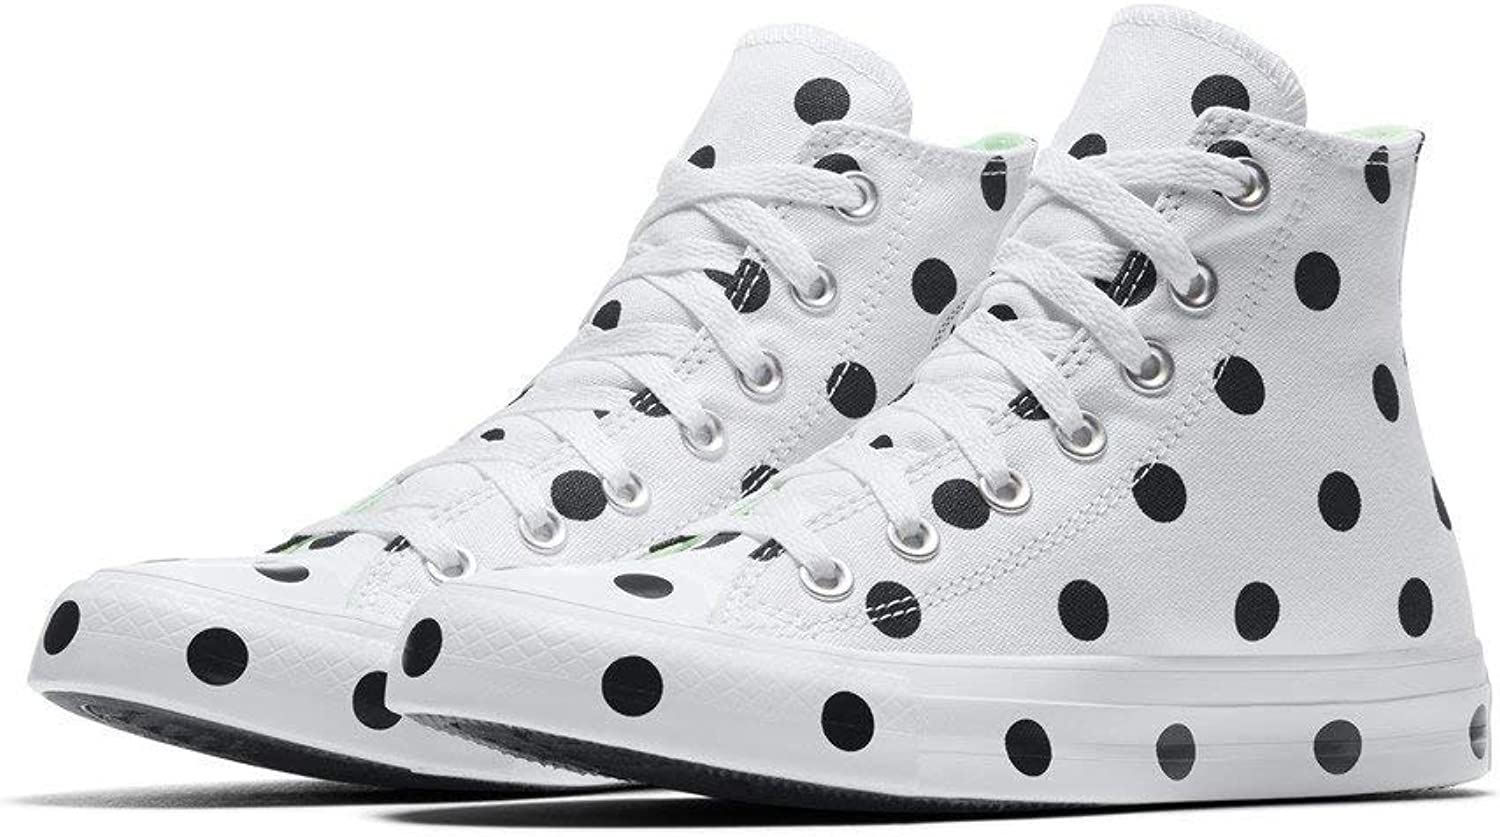 Converse - Frauen Chuck Taylor All Star Polka Dots High Top Schuhe  | Passend In Der Farbe